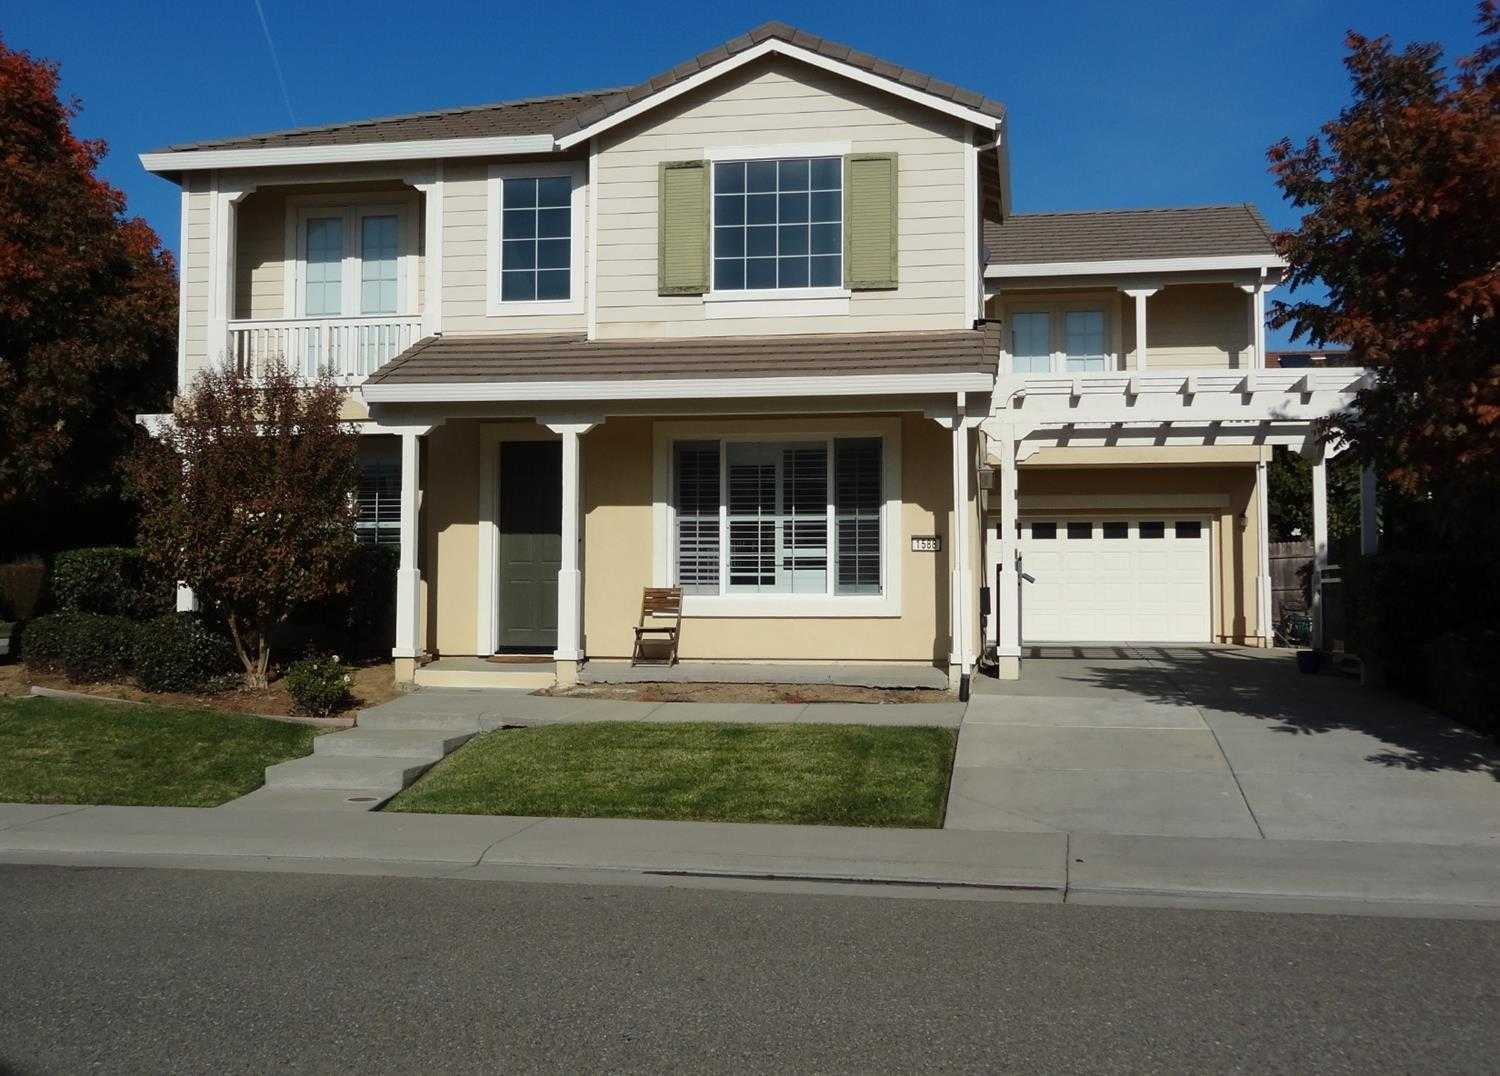 $489,000 - 4Br/3Ba -  for Sale in Grandmere Station At Lincoln Crossing, Lincoln